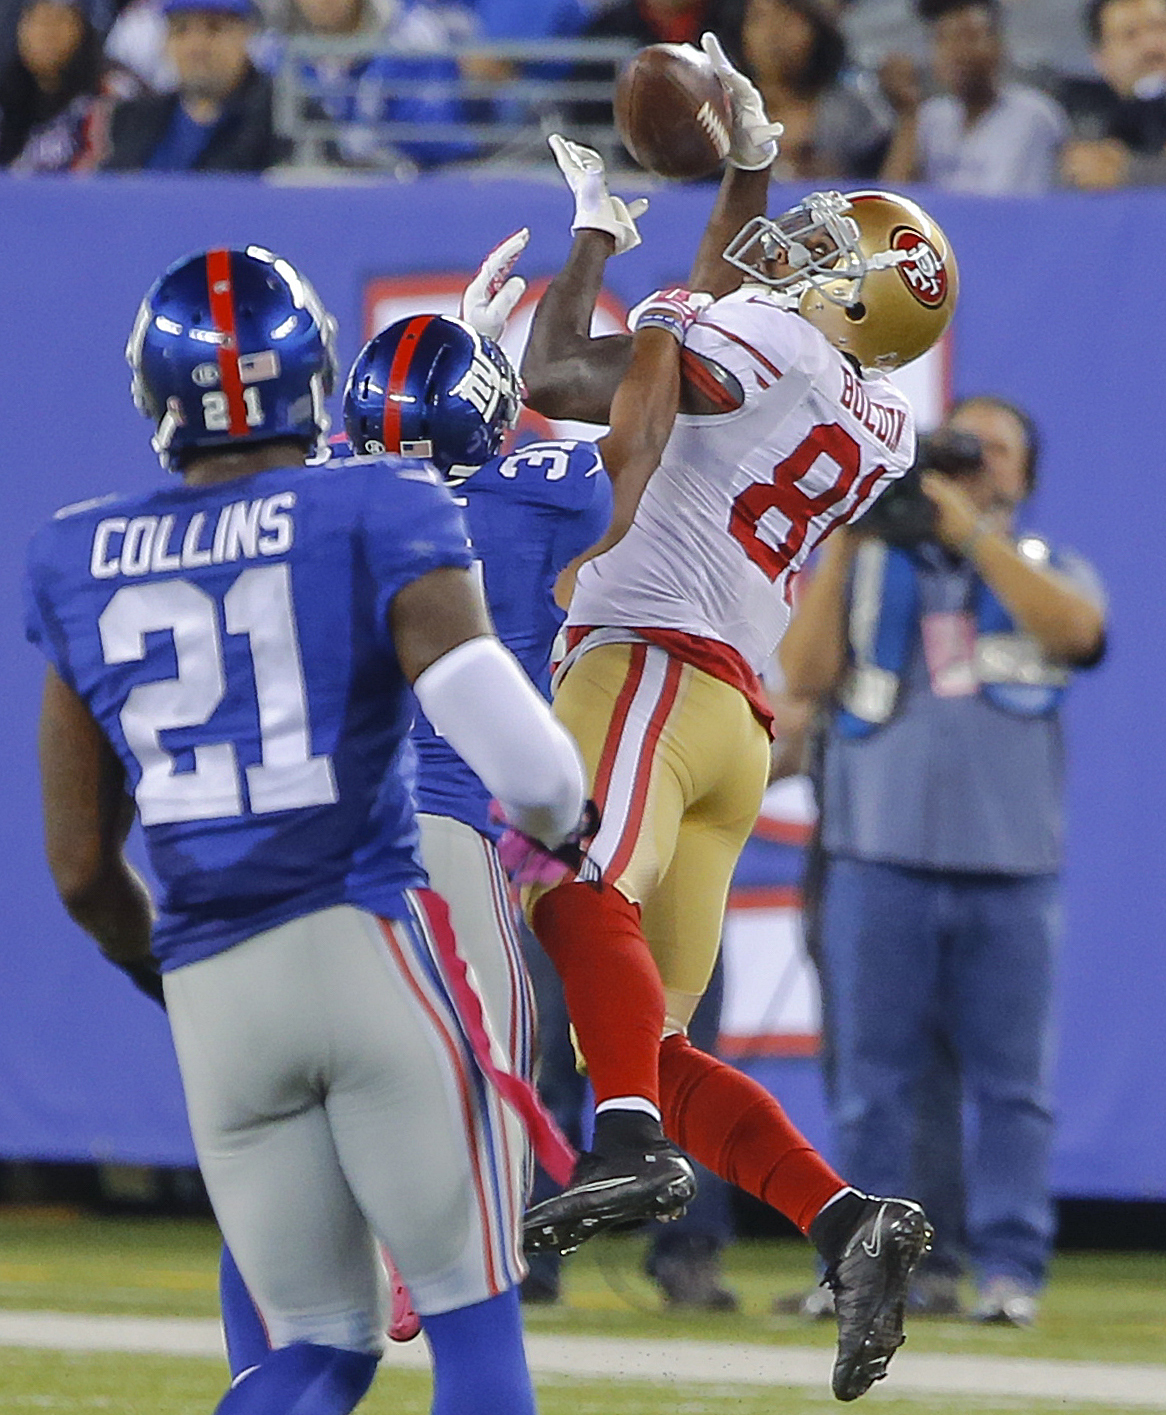 Could Anquan Boldin be a fit for the Giants?